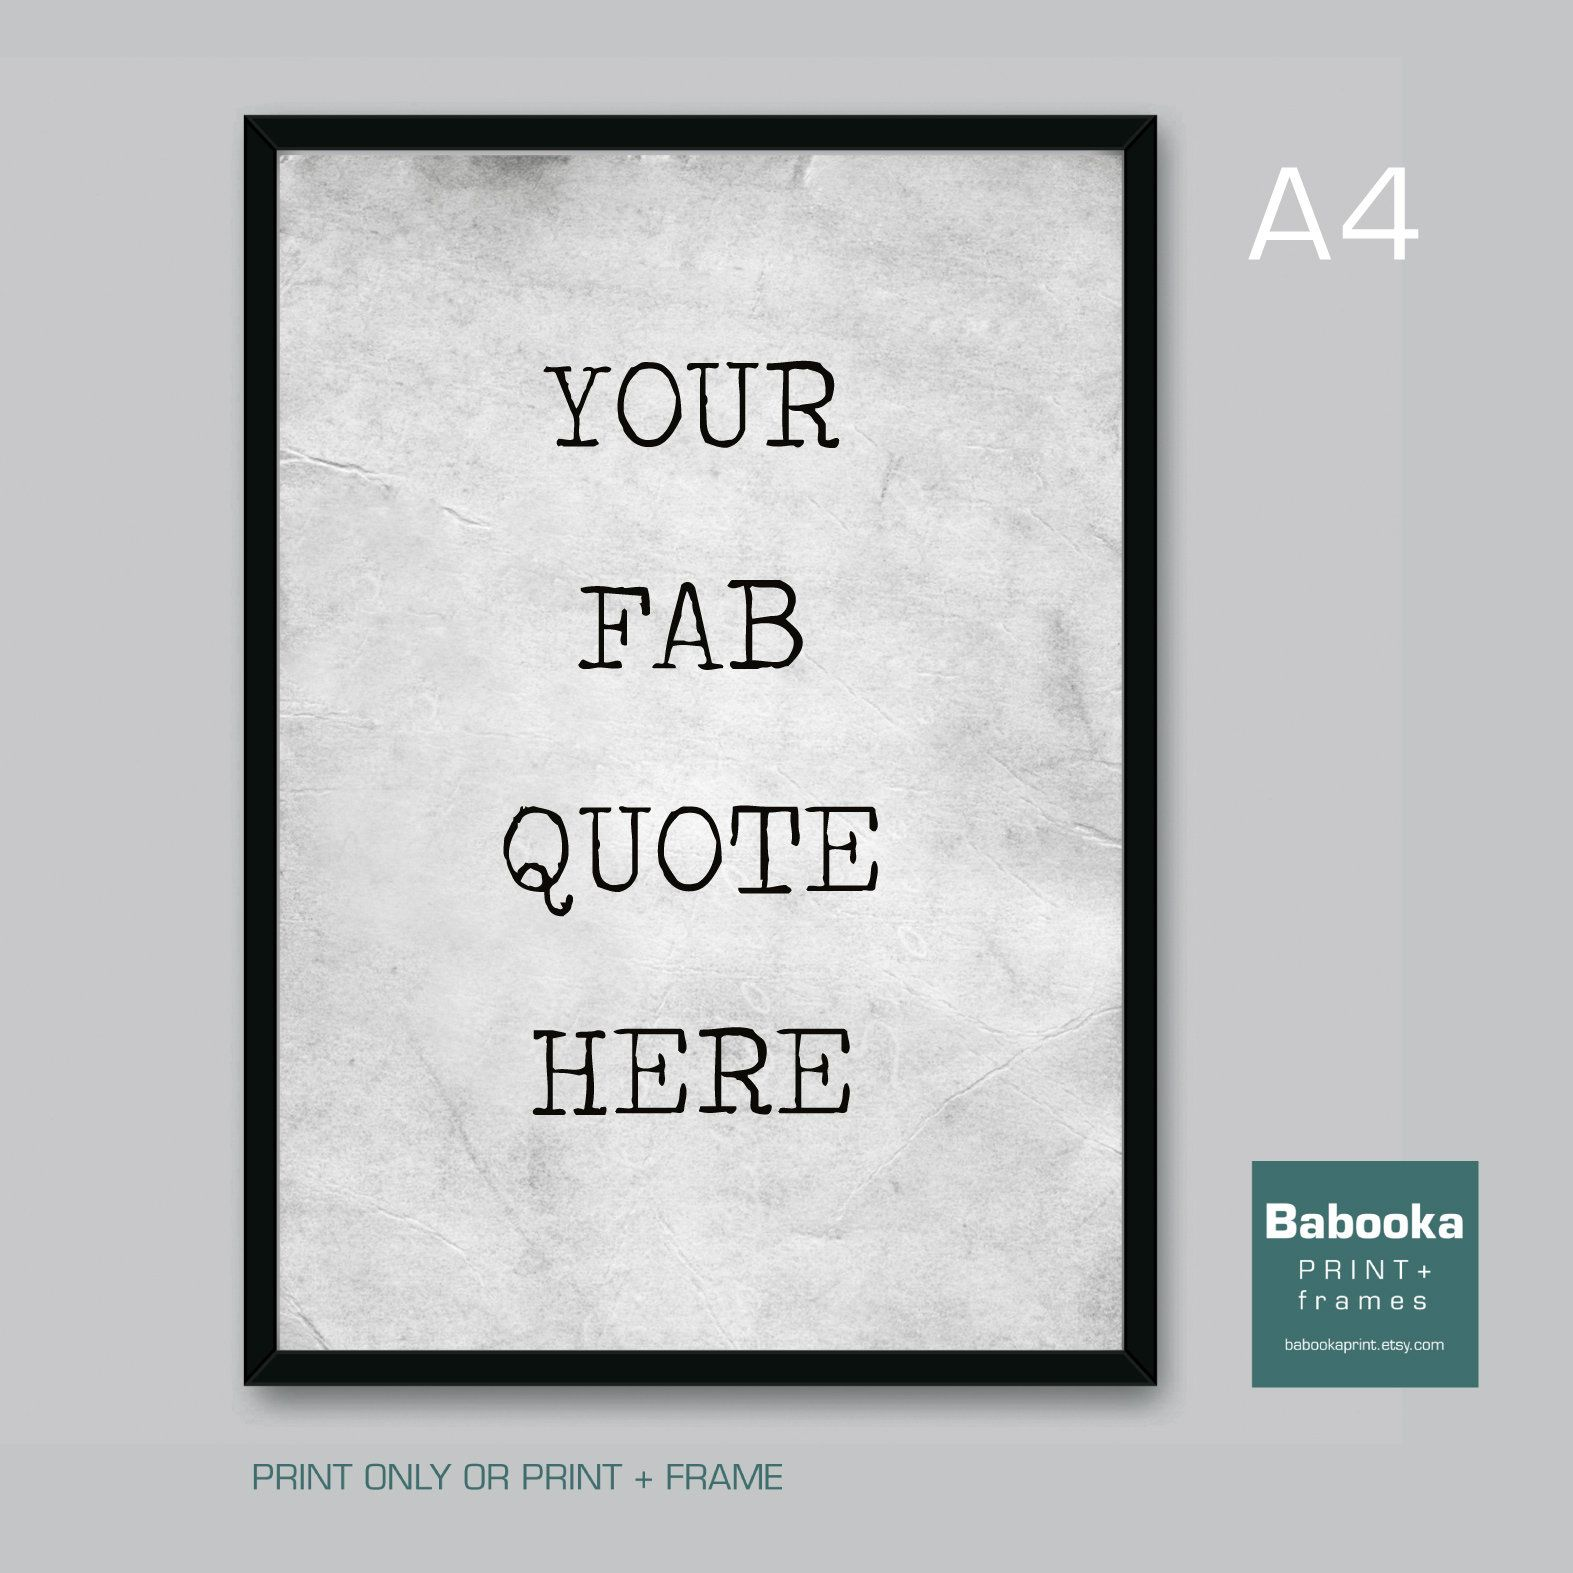 YOUR OWN Vintage Minimalist Typographic Quote A4 Giclee